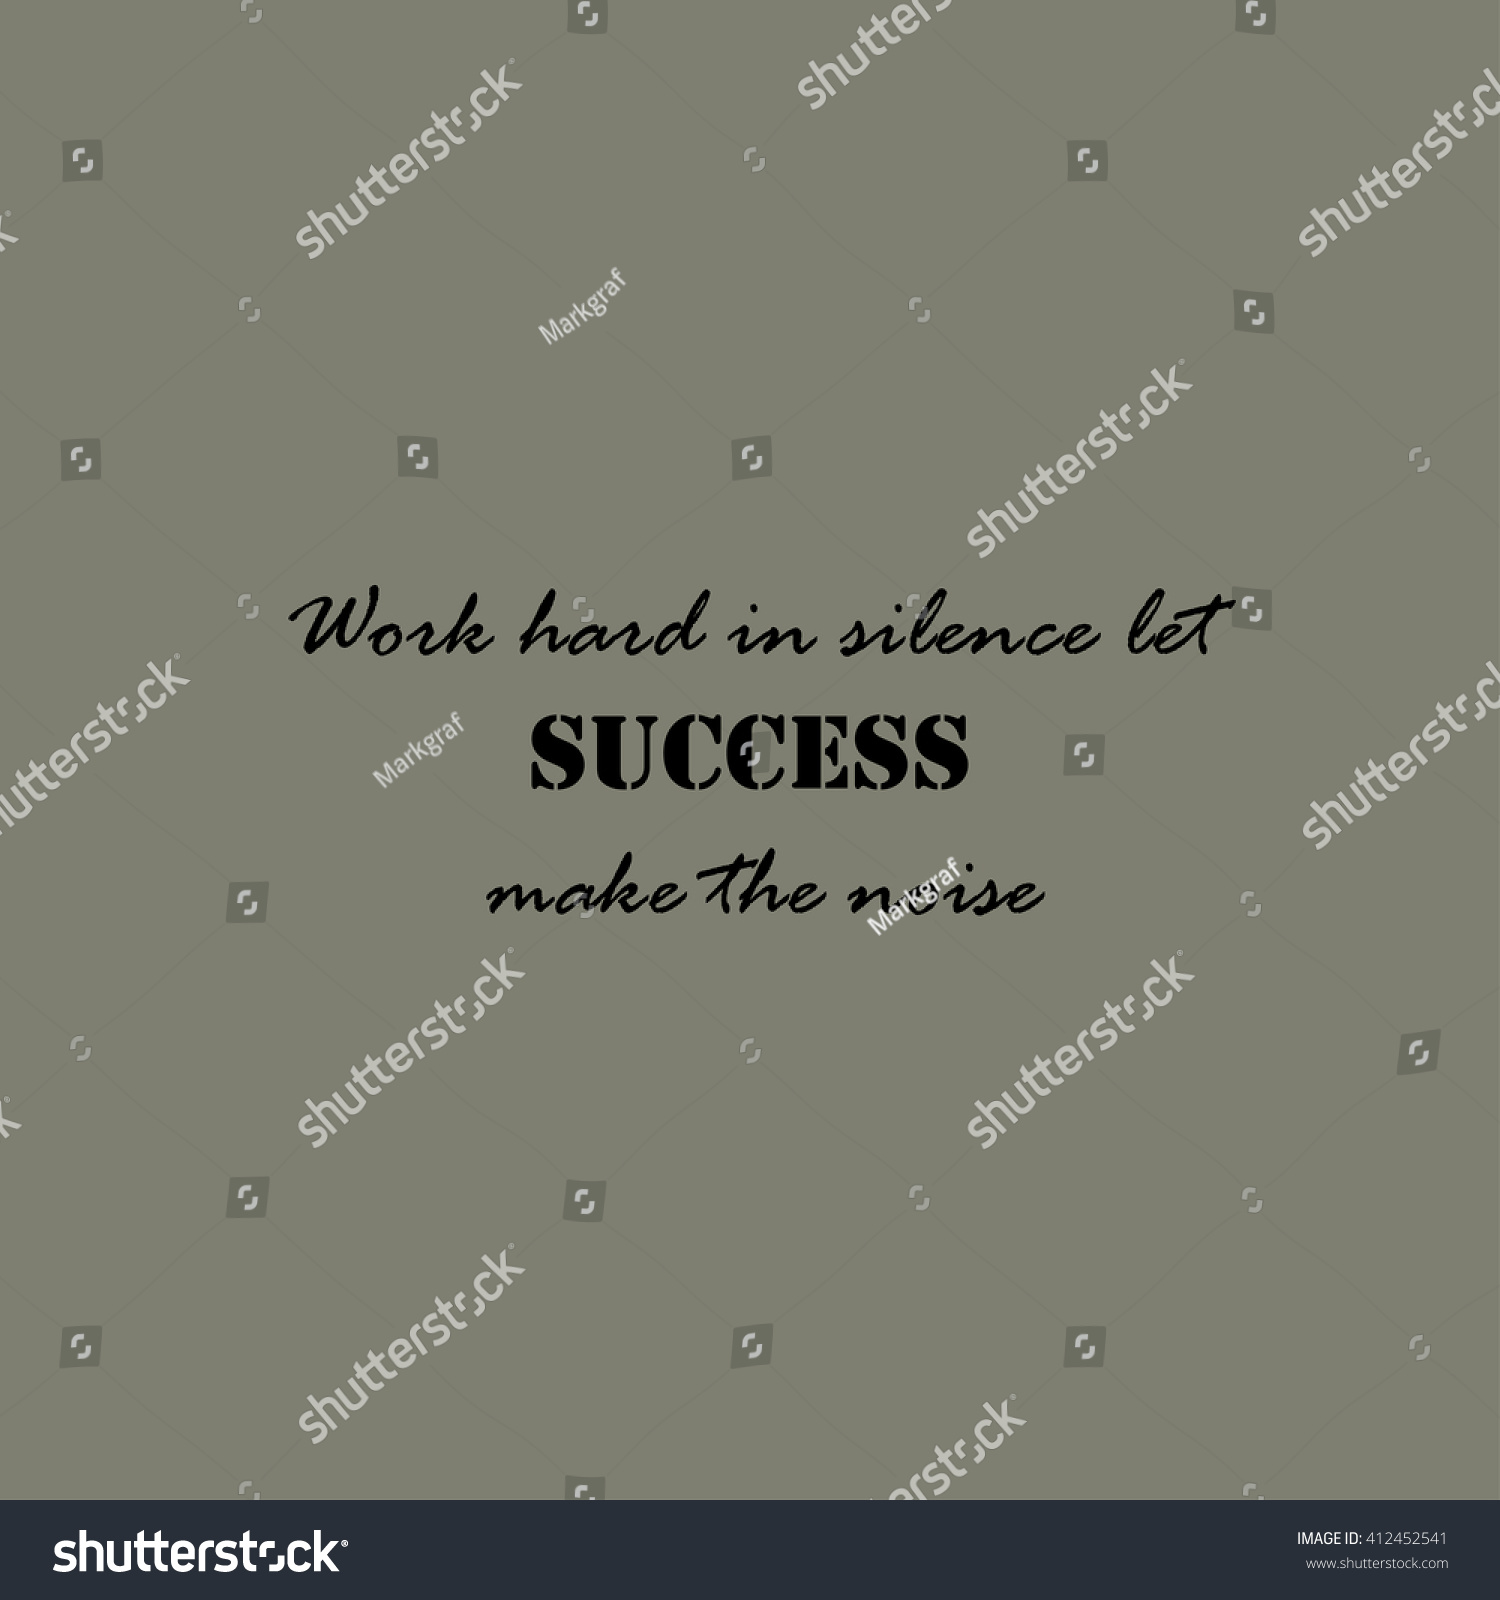 Royalty Free Stock Illustration Of Work Hard Silence Let Success